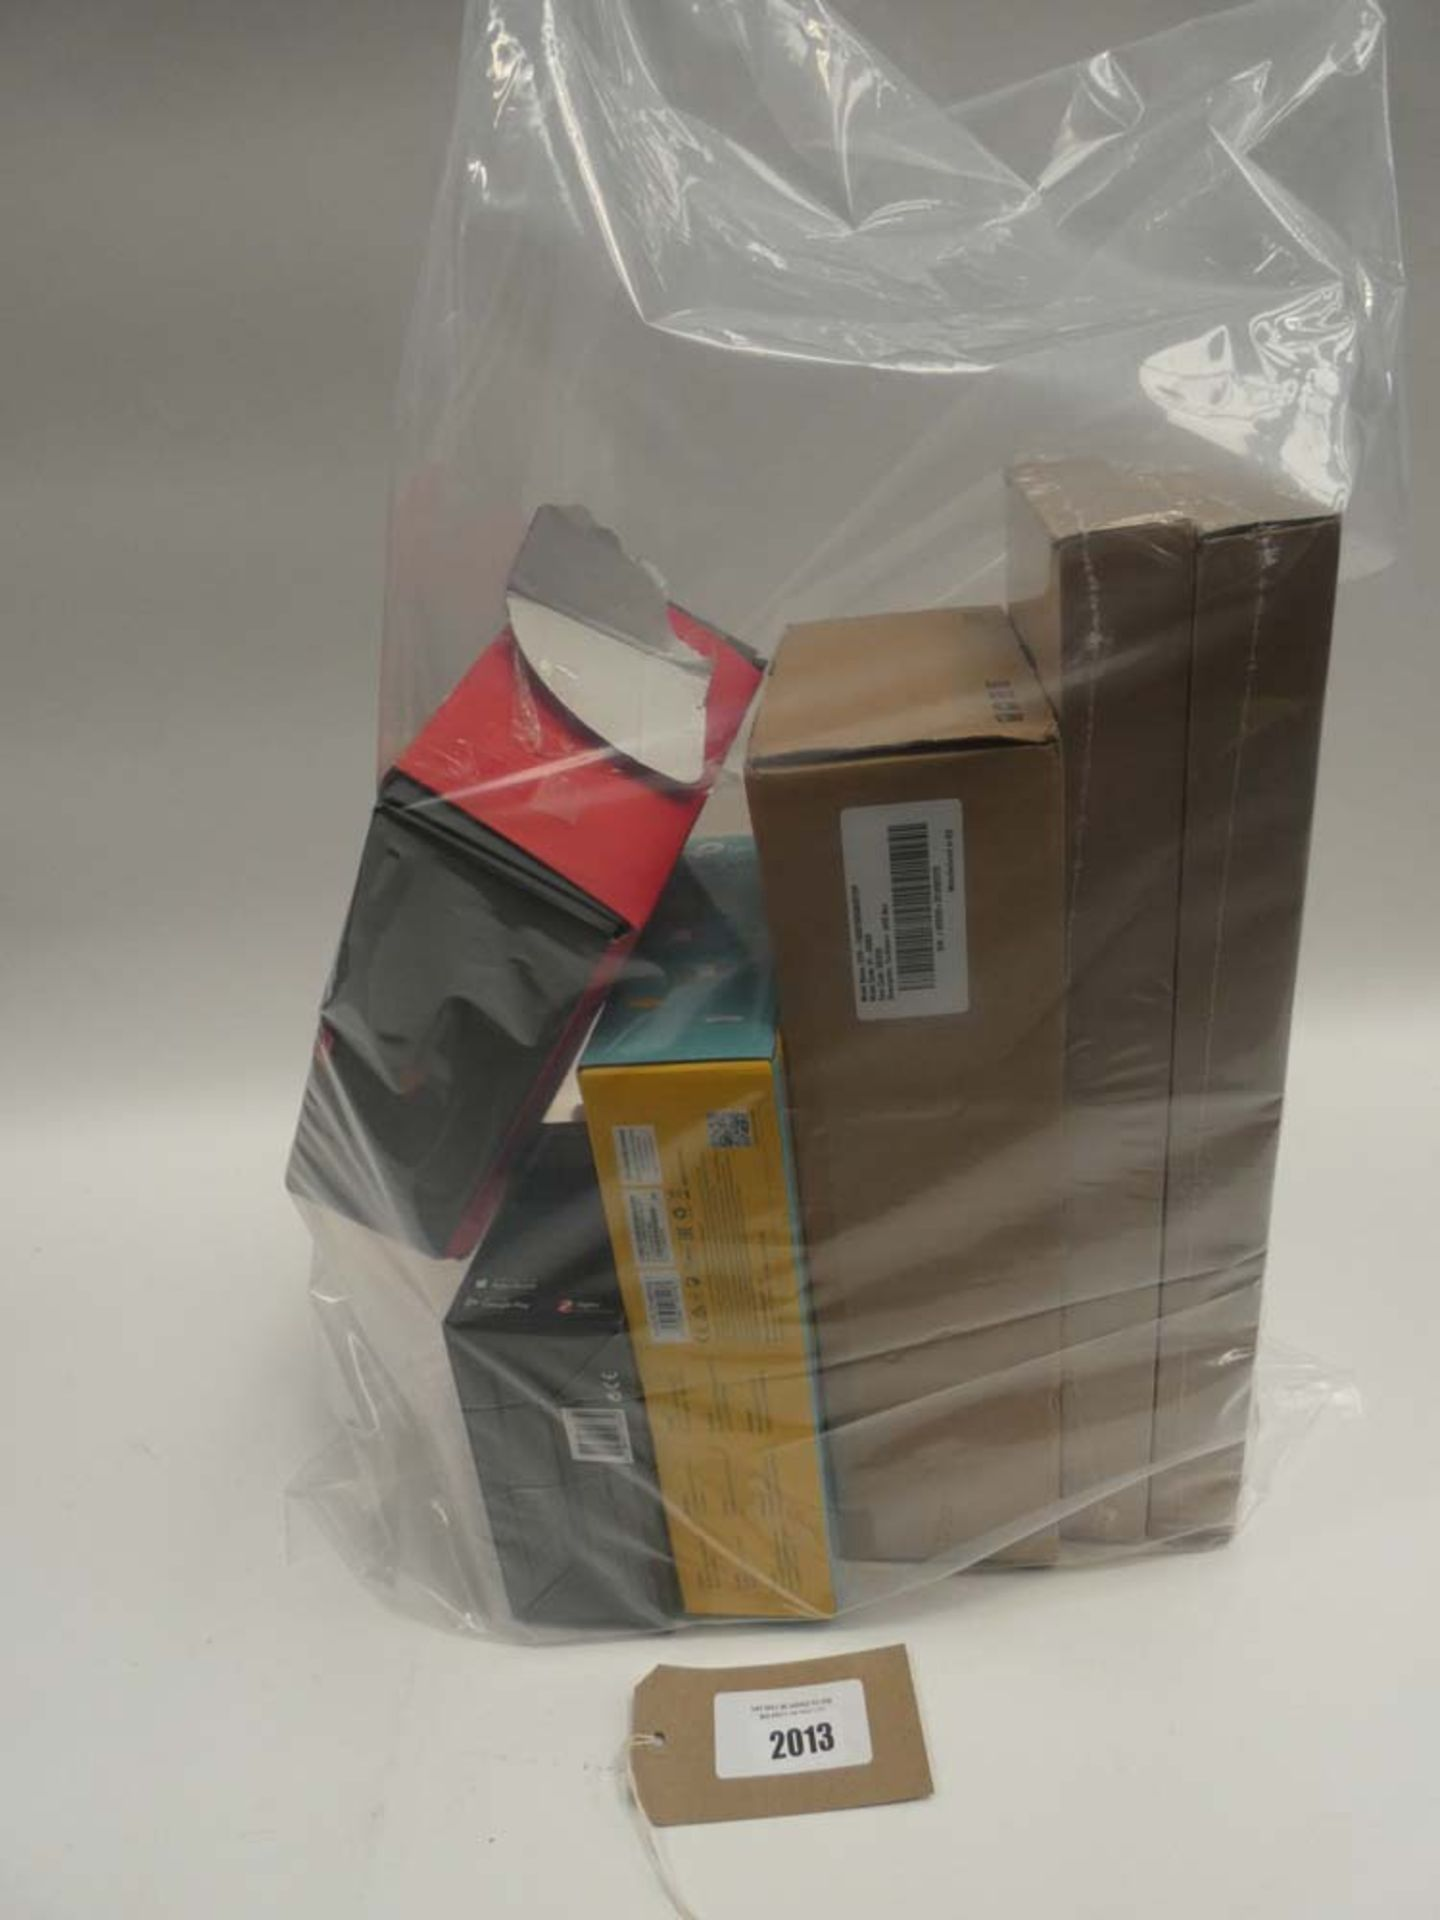 Lot 2013 - Bag containing quantity of various wireless devices